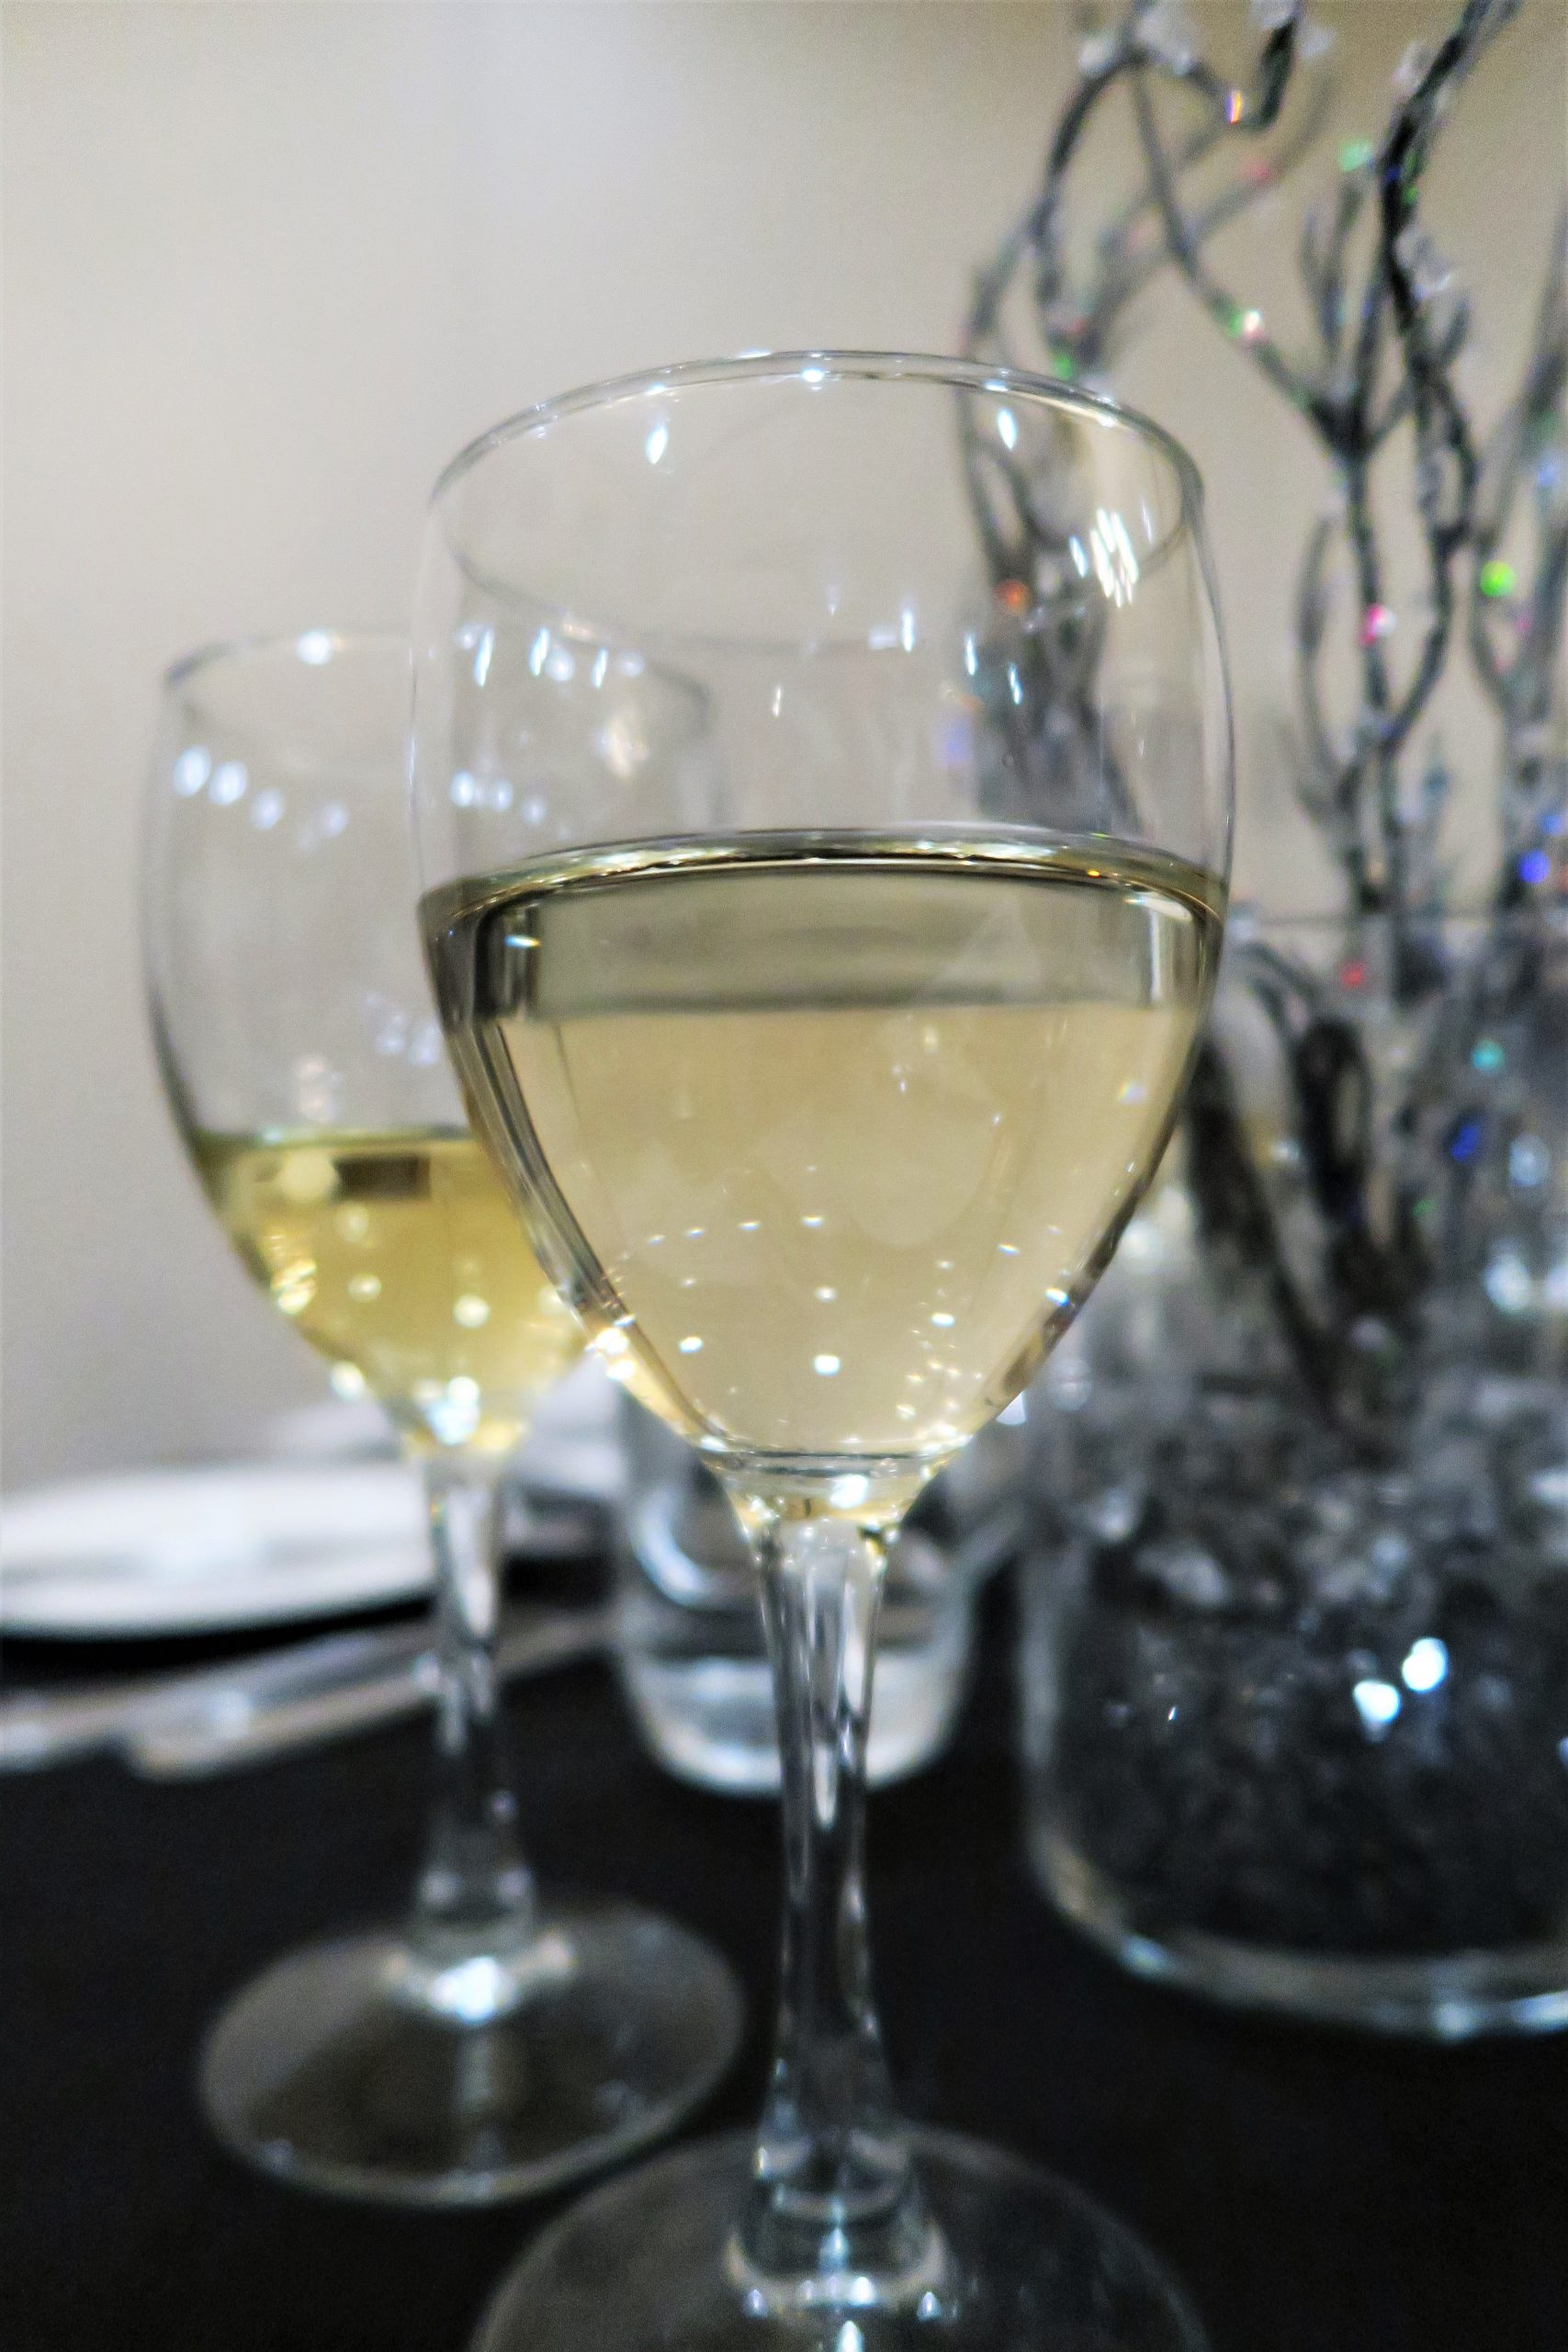 The perfect excuse for some wining and dining: Wine Lover's Dinner